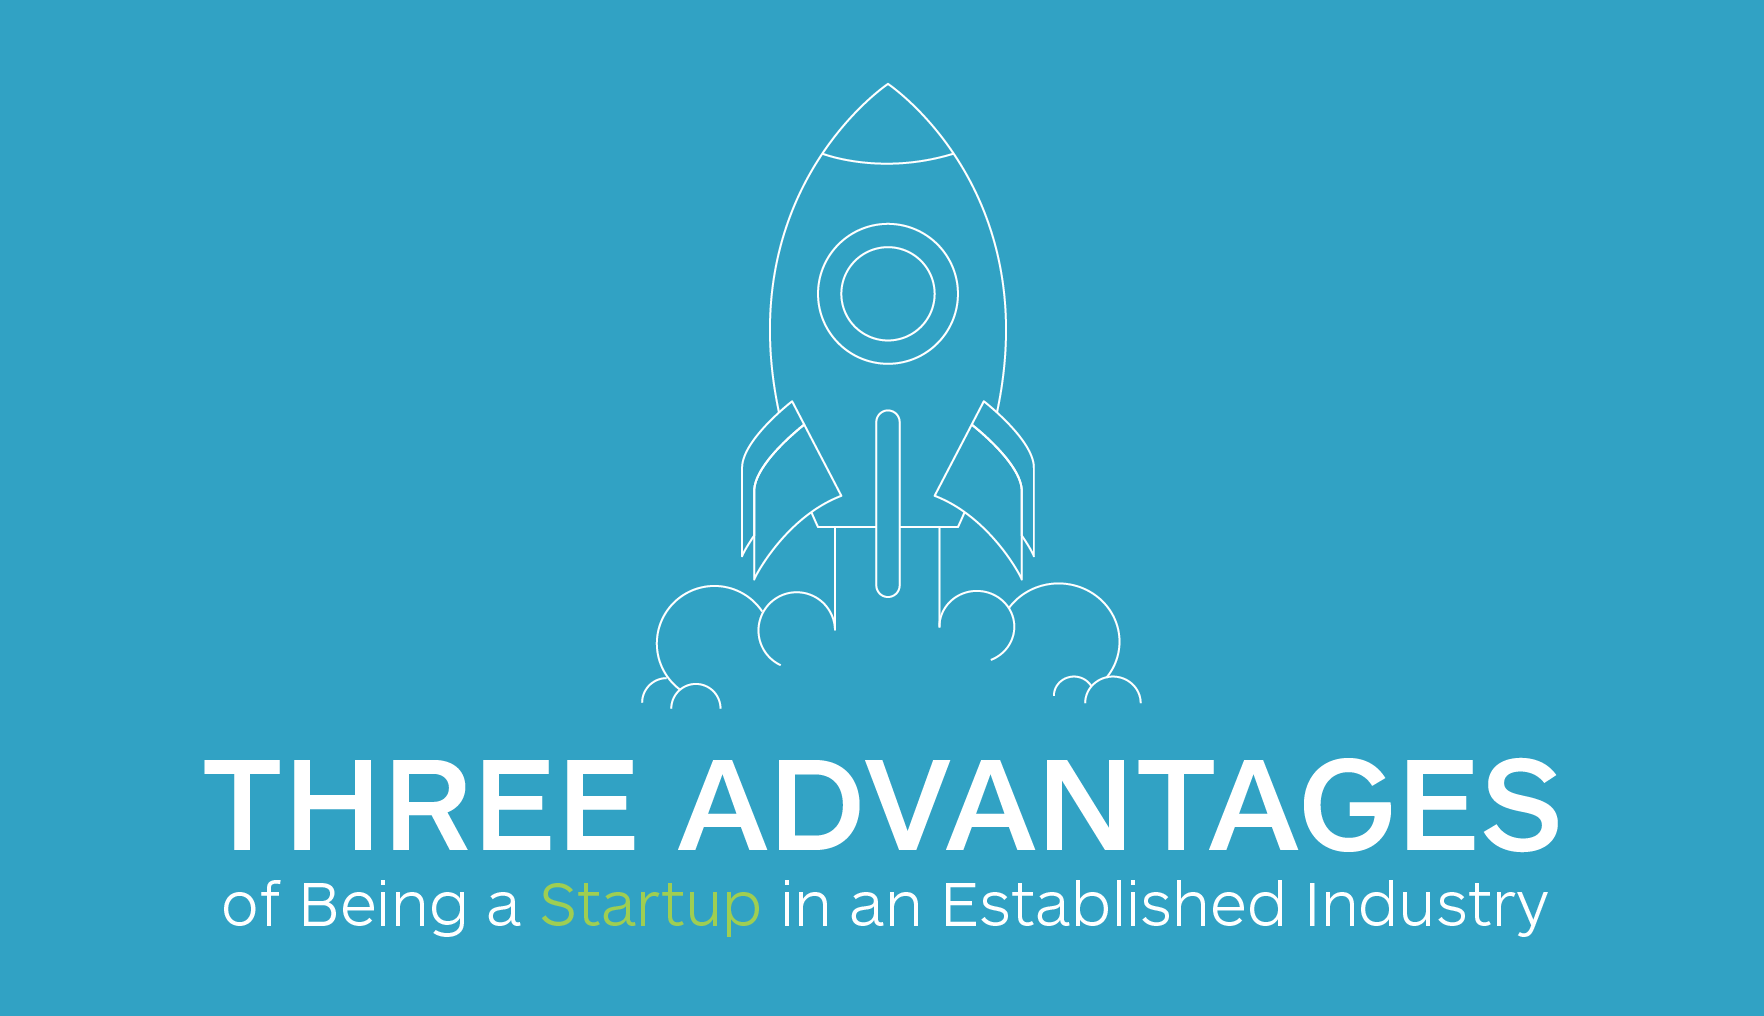 3 Advantages of Being a Startup in an Established Industry